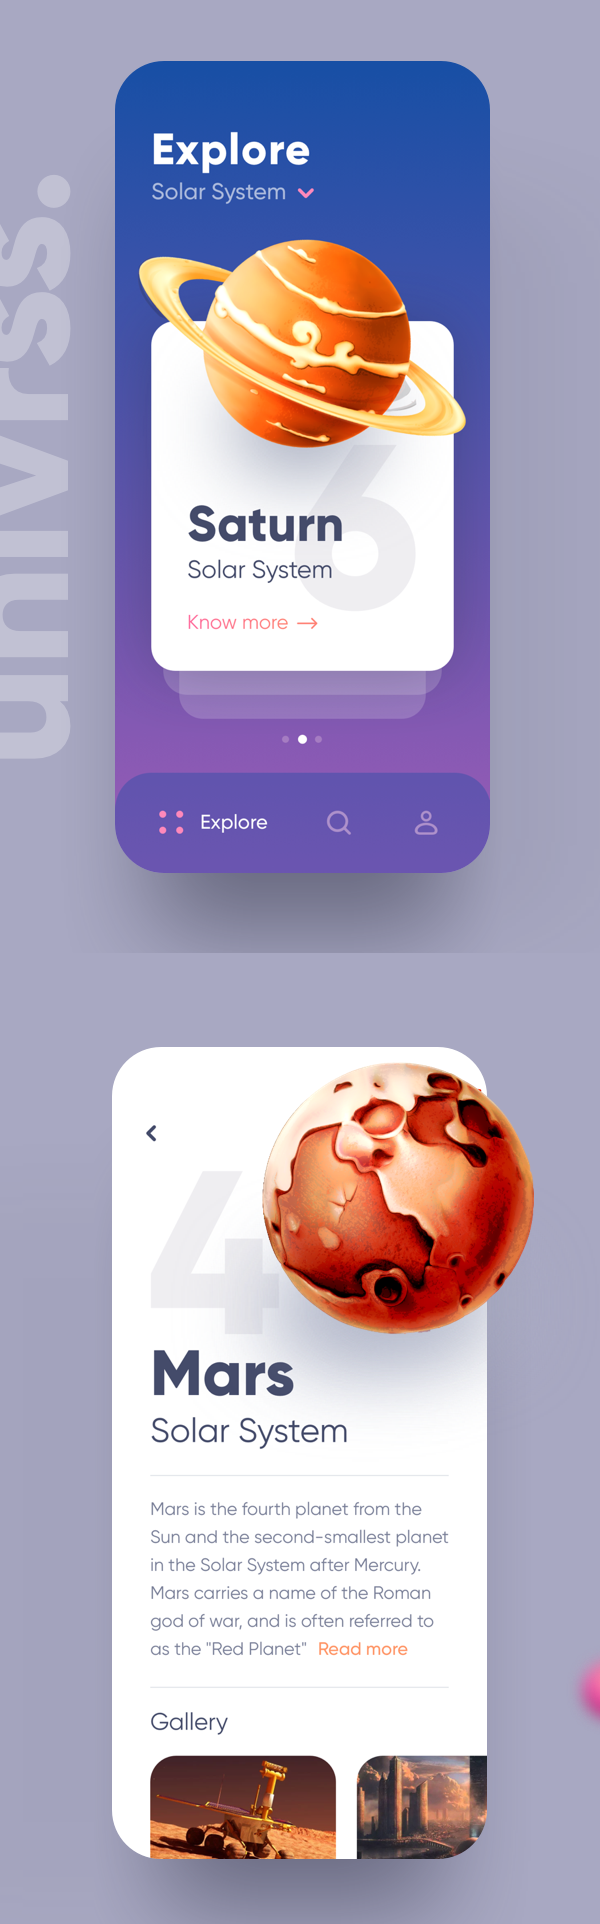 Modern Mobile App UI Design with Amazing UX - 3